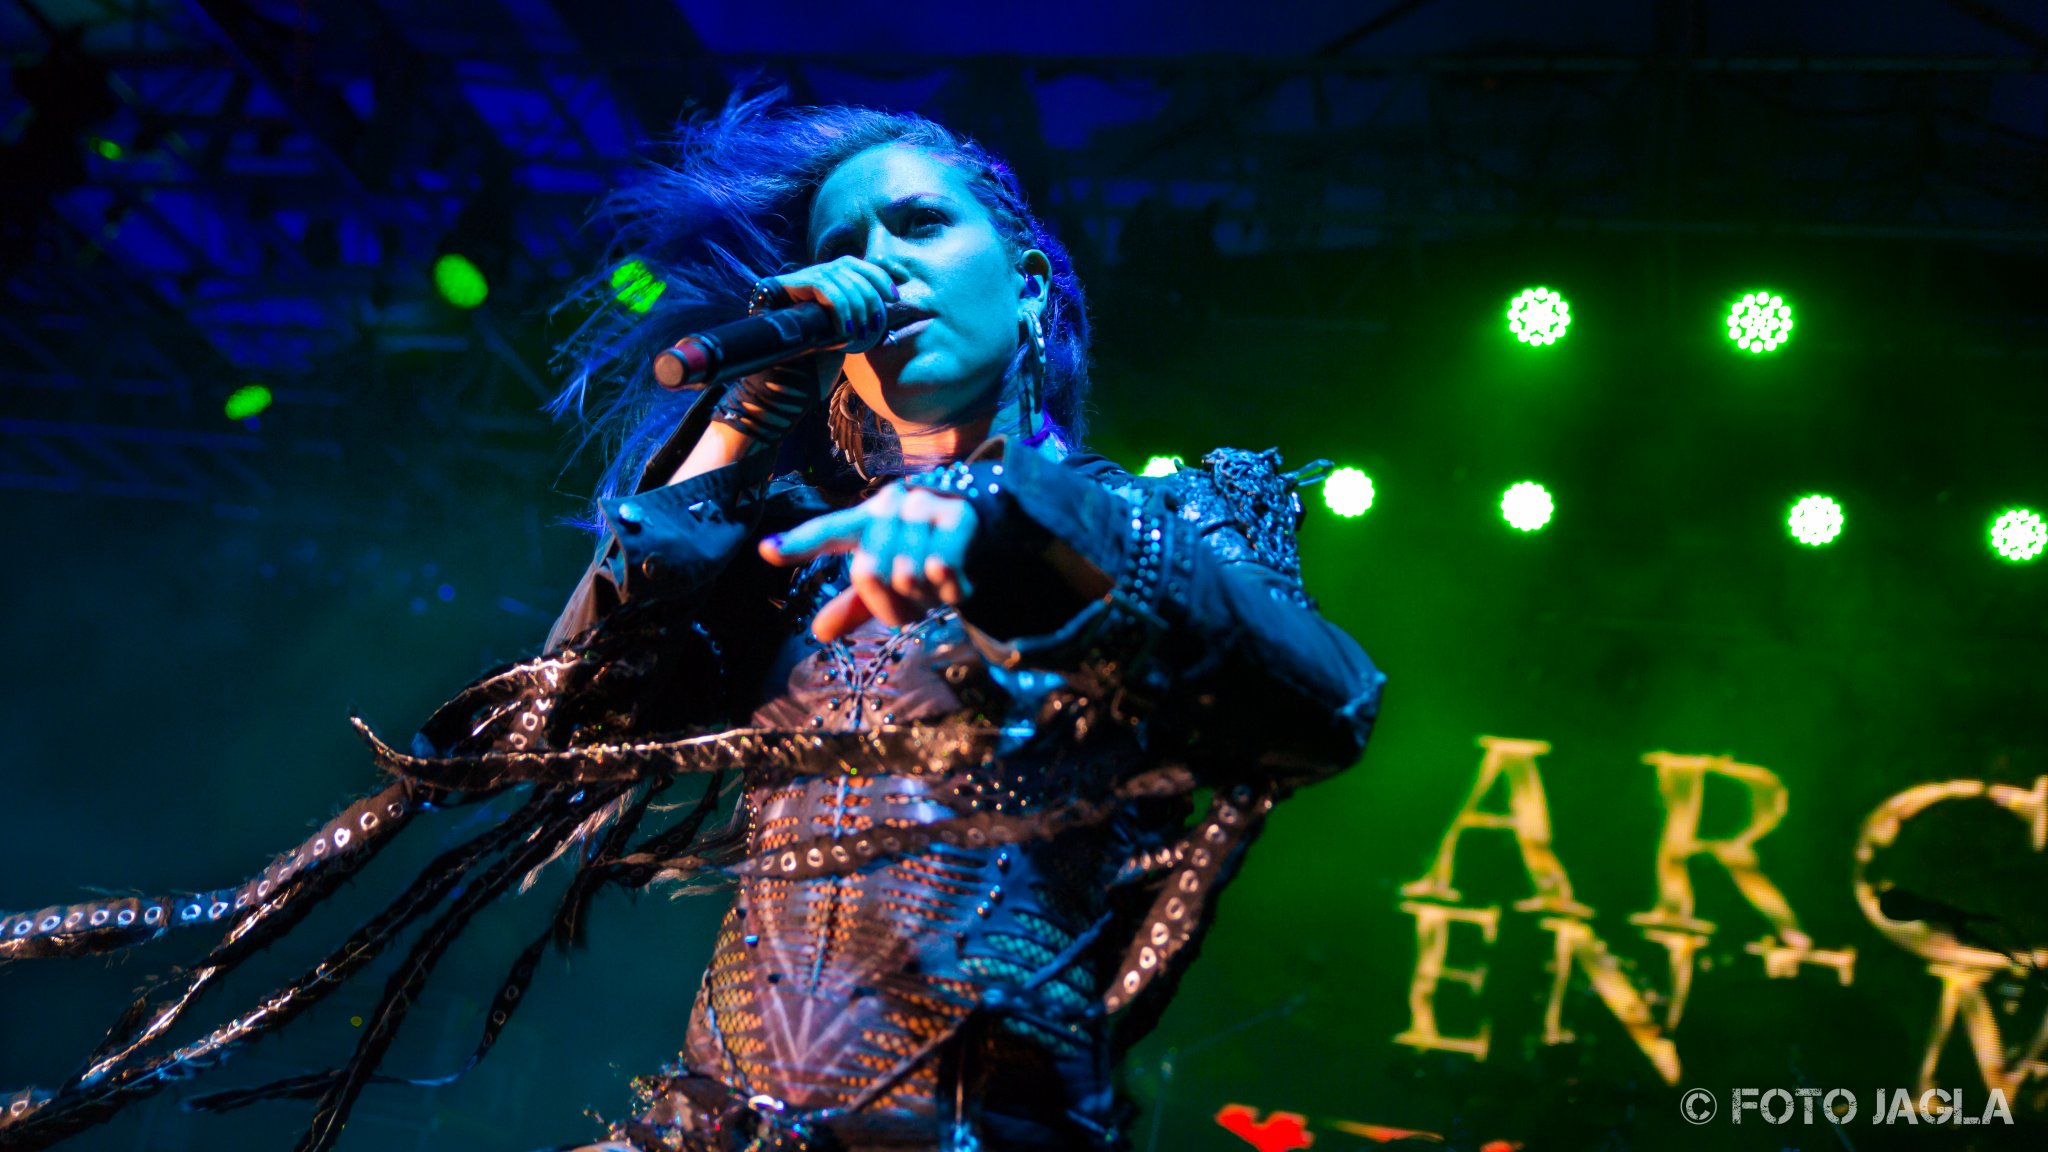 70000 Tons Of Metal 2017 Alissa White-Gluz von Arch Enemy auf der Pooldeck-Stage